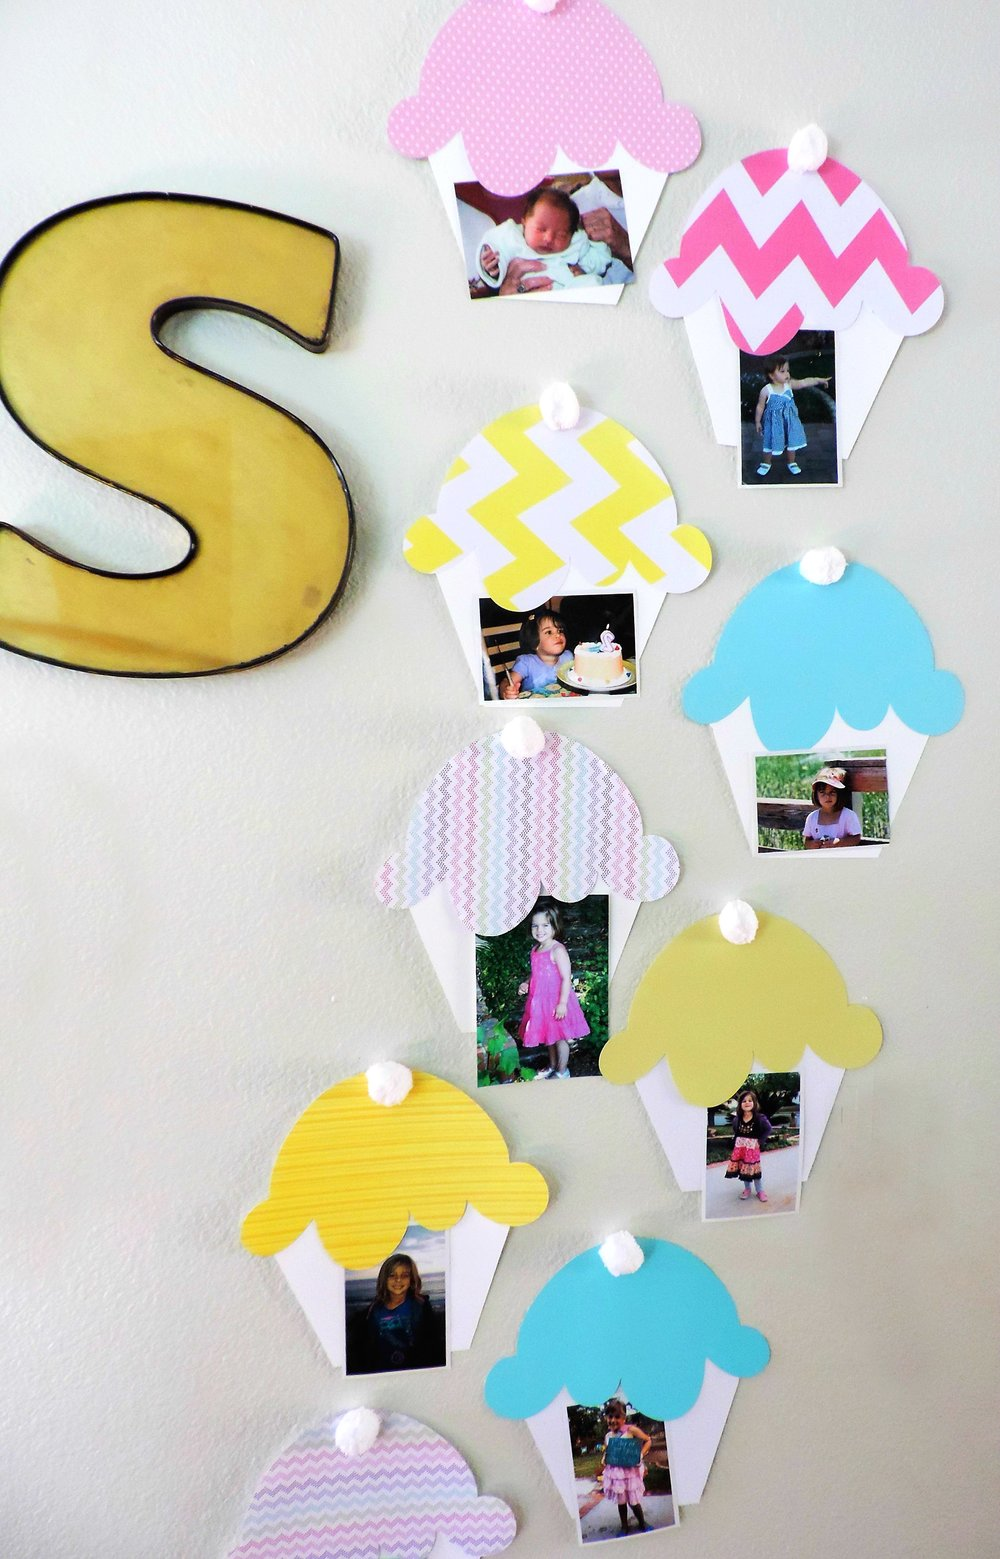 Cupcake party-cupcake party decor-cupcake birthday party-cupcake photo holder-cupcake wars-cupcake banner-www.SugarPartiesLA.com.jpg